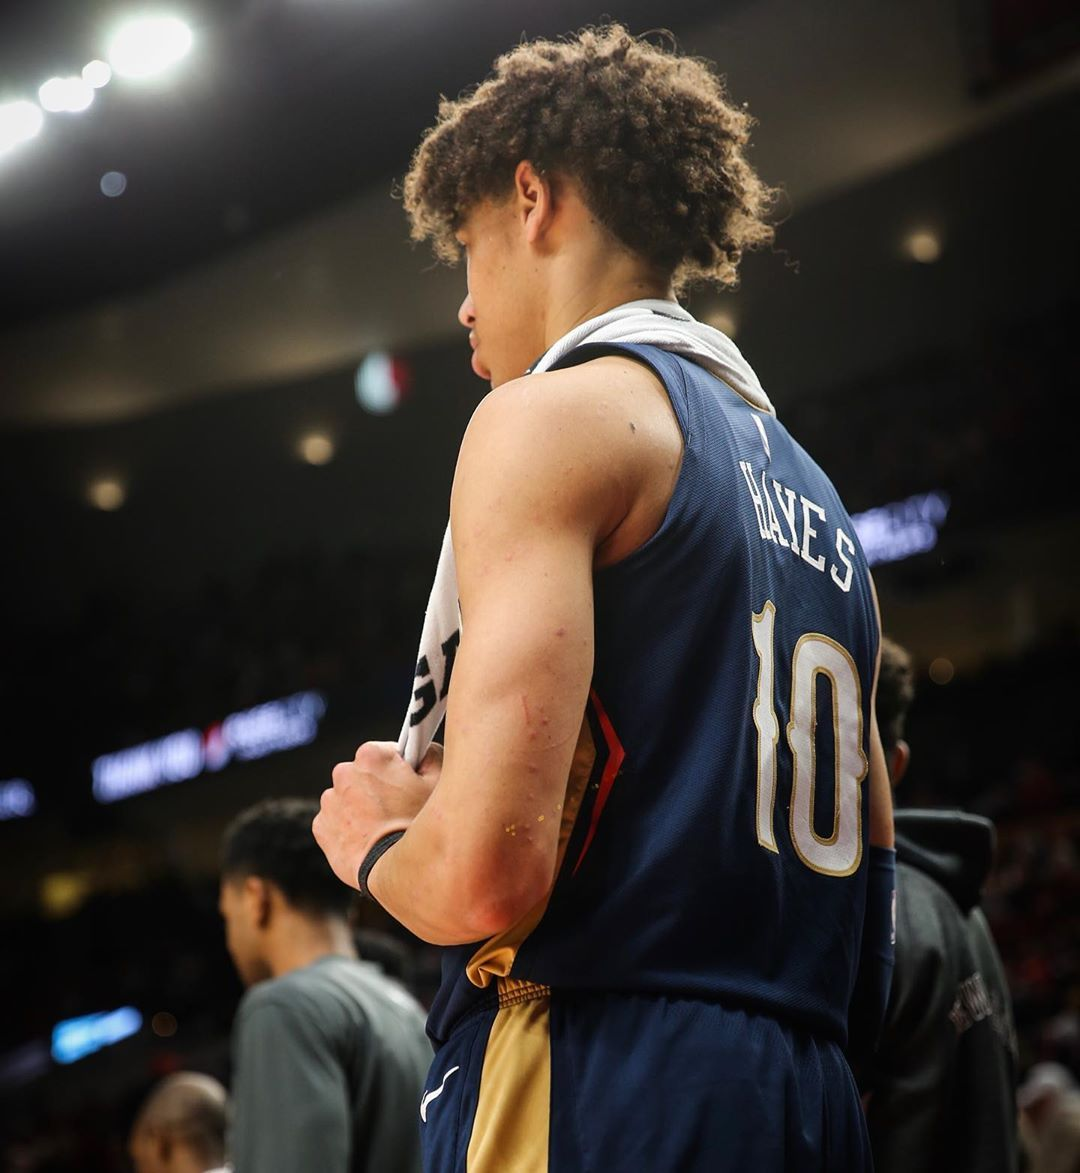 Jaxson Hayes Sideshowjax Instagram Photos And Videos In 2020 Nba Players New Orleans Pelicans New Orleans